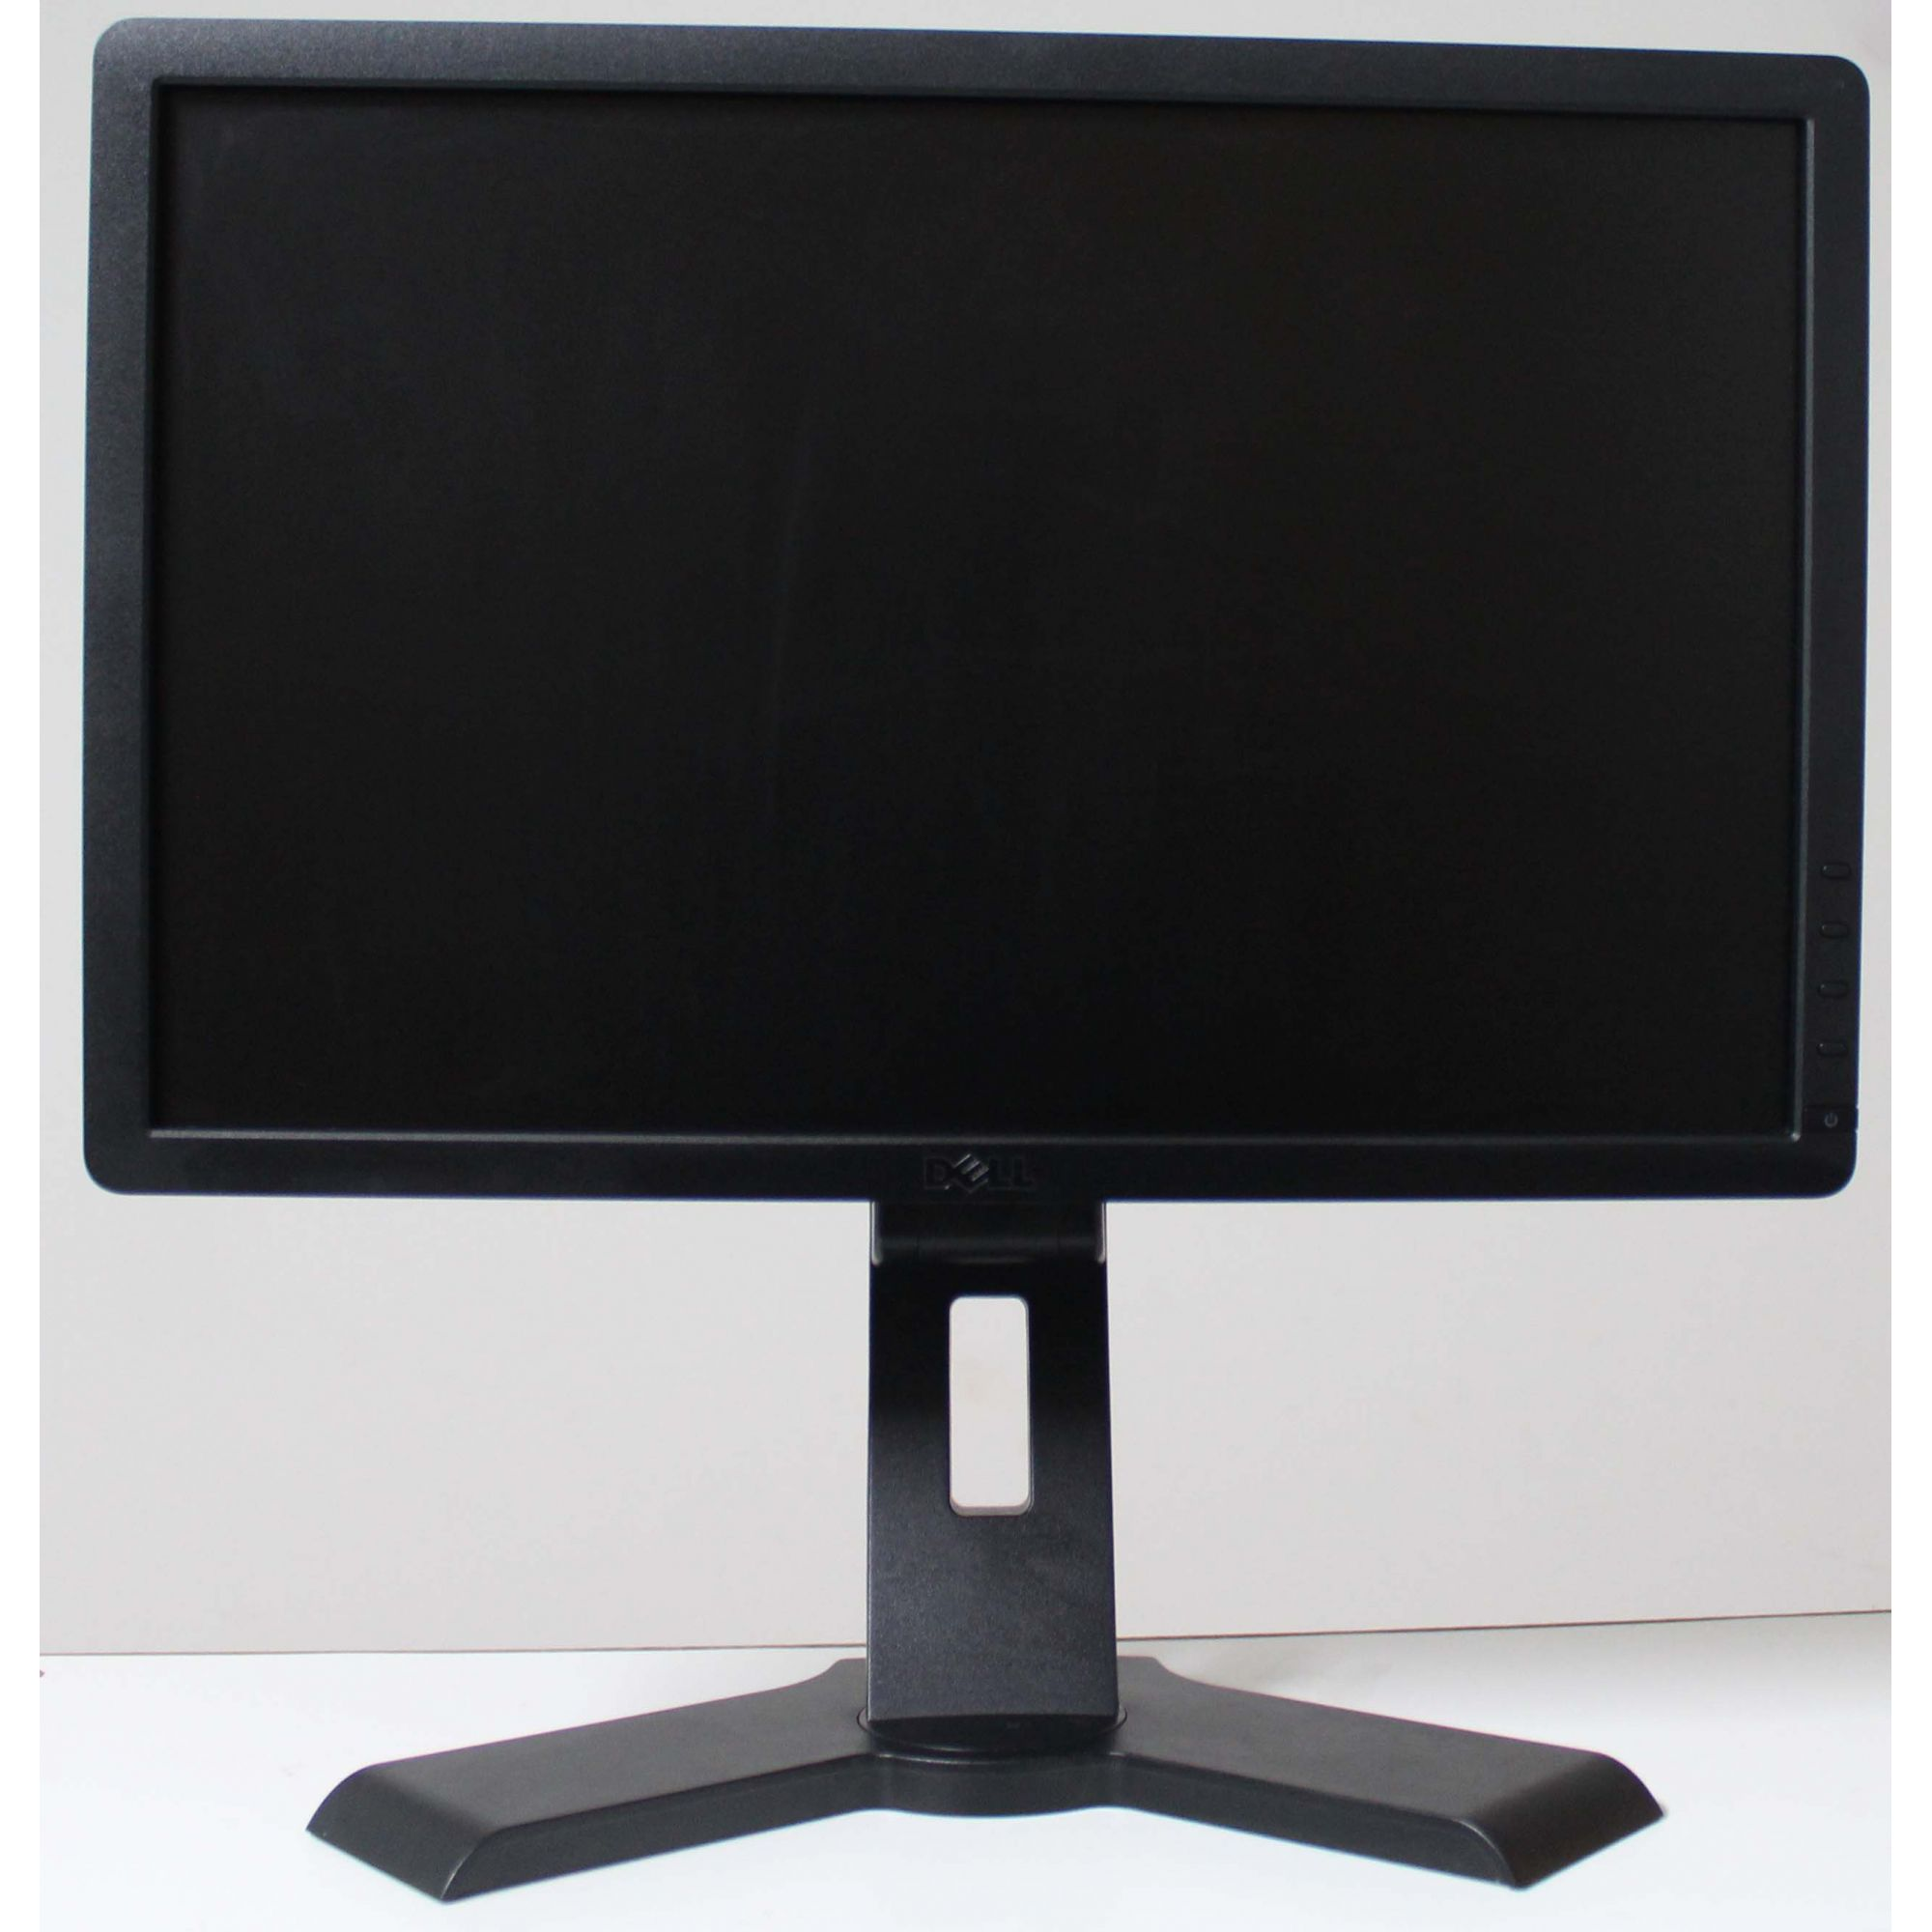 "Monitor Dell Flat P1913t 19"" - LCD Widescreen"